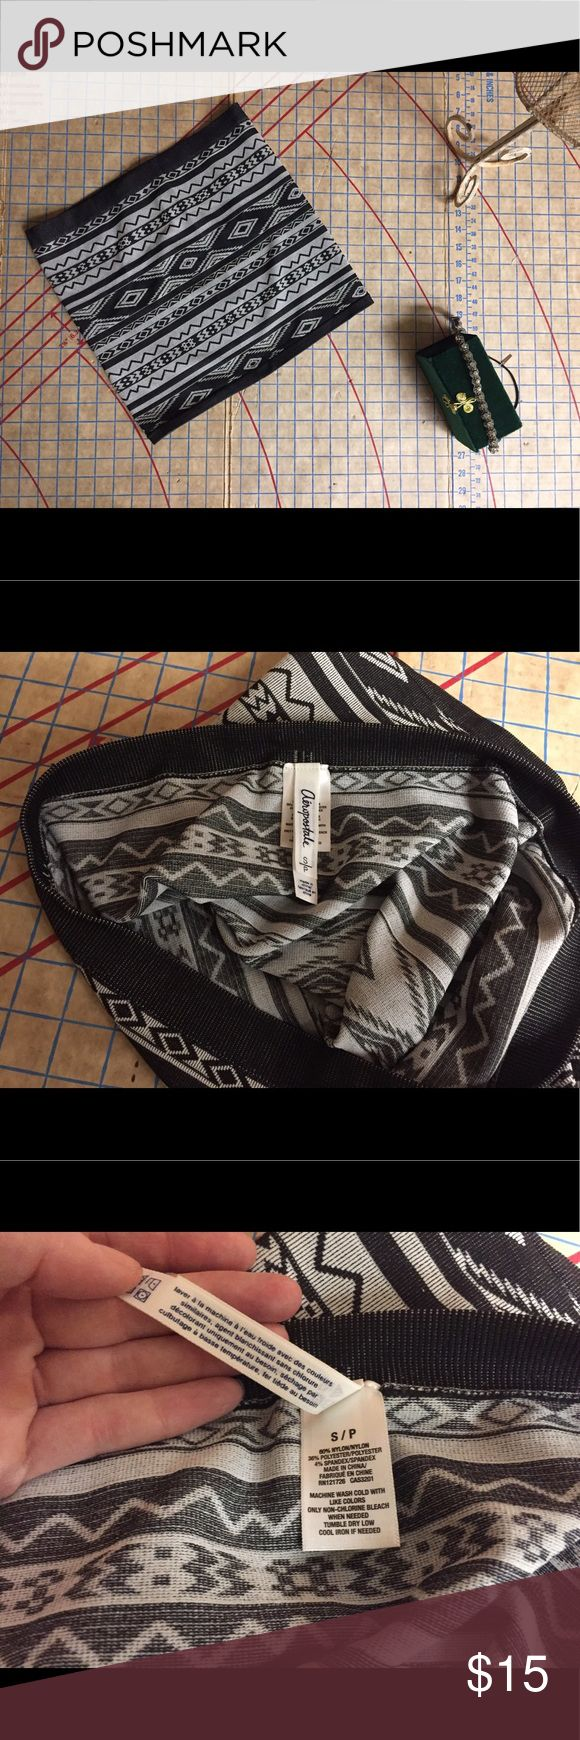 """Aeropostale festival tube skirt size small Like new! Never worn. Cool black and white geometric print tube skirt by Aeropostale size small. Absolutely no damage or wear. Super stretchy. Thick fabric that smooths lumps and bumps. Perfect festival skirt. Could be worn as a bandeau or tube top. Skirt is 13.5"""" in length. Aeropostale Skirts Mini"""